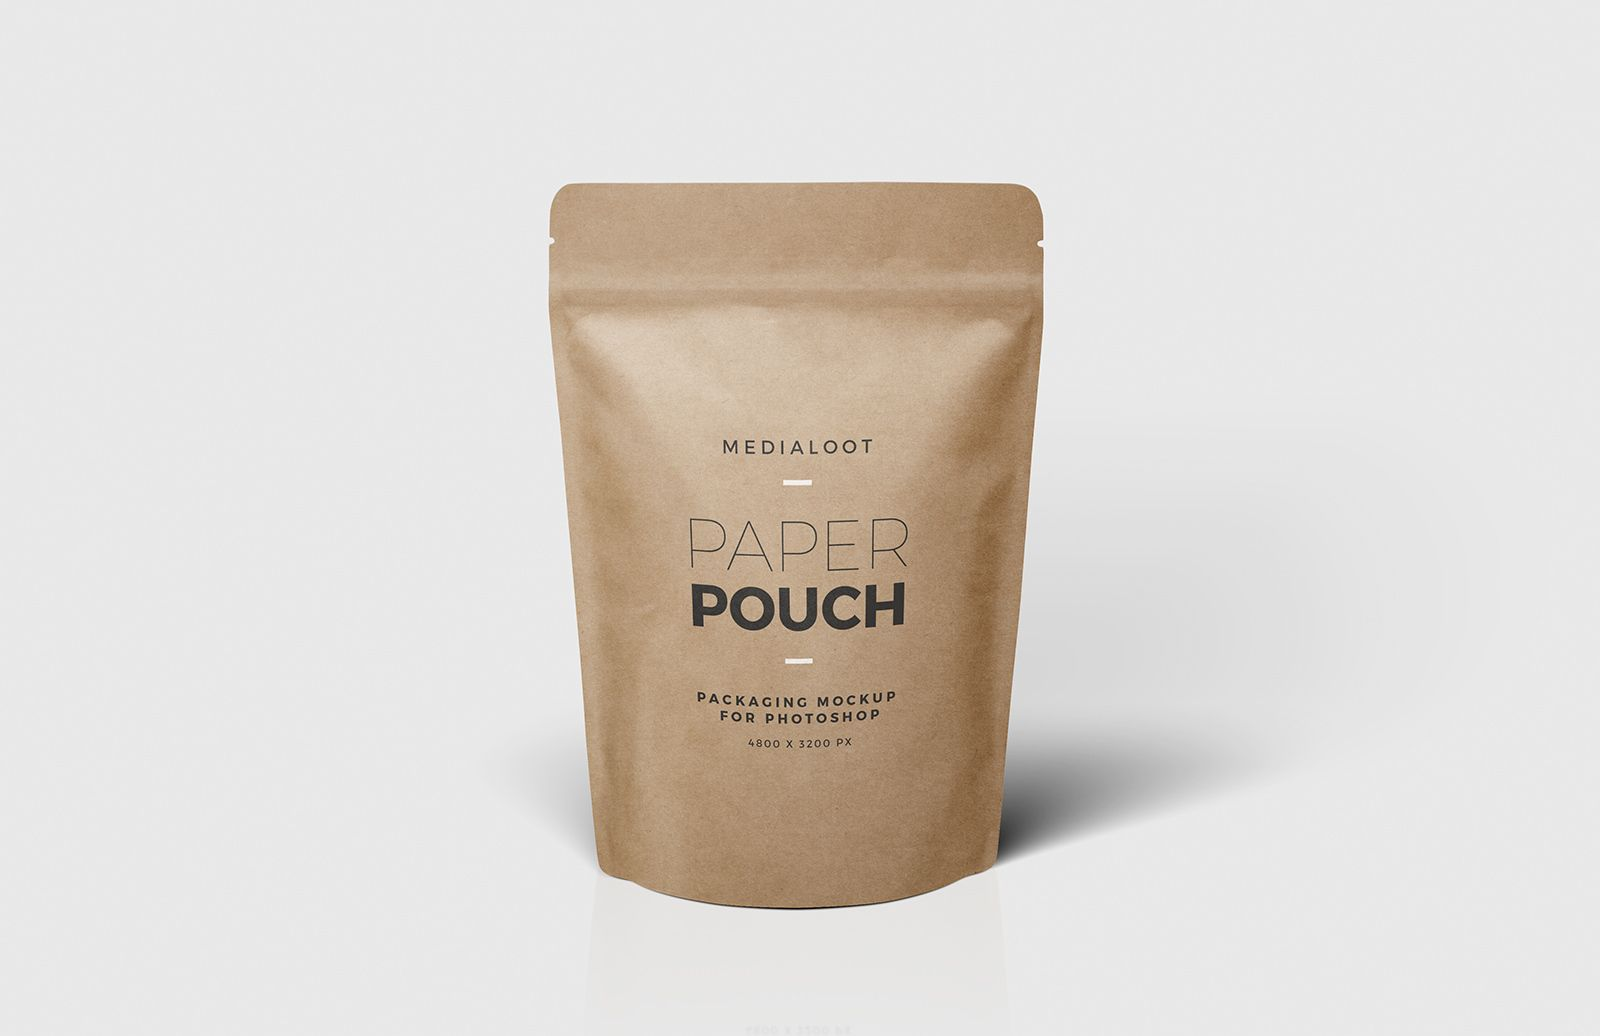 Download Free Paper Pouch Packaging Mockup Paper Pouch Pouch Packaging Packaging Mockup